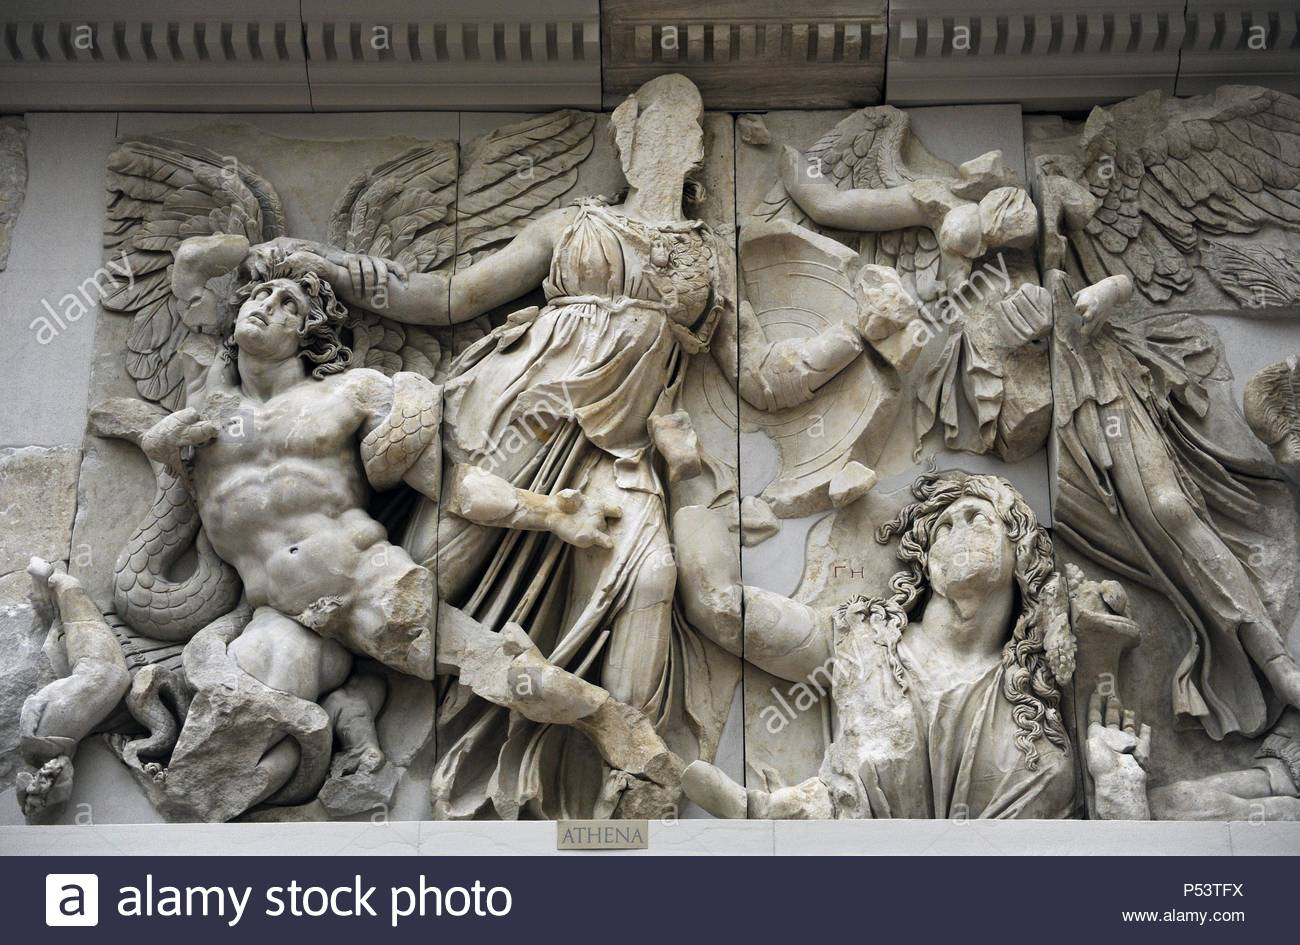 Pergamon Altar. Built by order of Eumenes II Soter. 164-156 BC by artists of the school of Pergamon. Marble and limestone. East frieze. Gigantomachy. Struggle between gods and giants. Athena taking the young Alcyoneus by the hair while his mother, Gaia, leaves the ground due to the death of his son. Next, the winged Nike.  Pergamon Museum. Berlin. Germany. - Stock Image